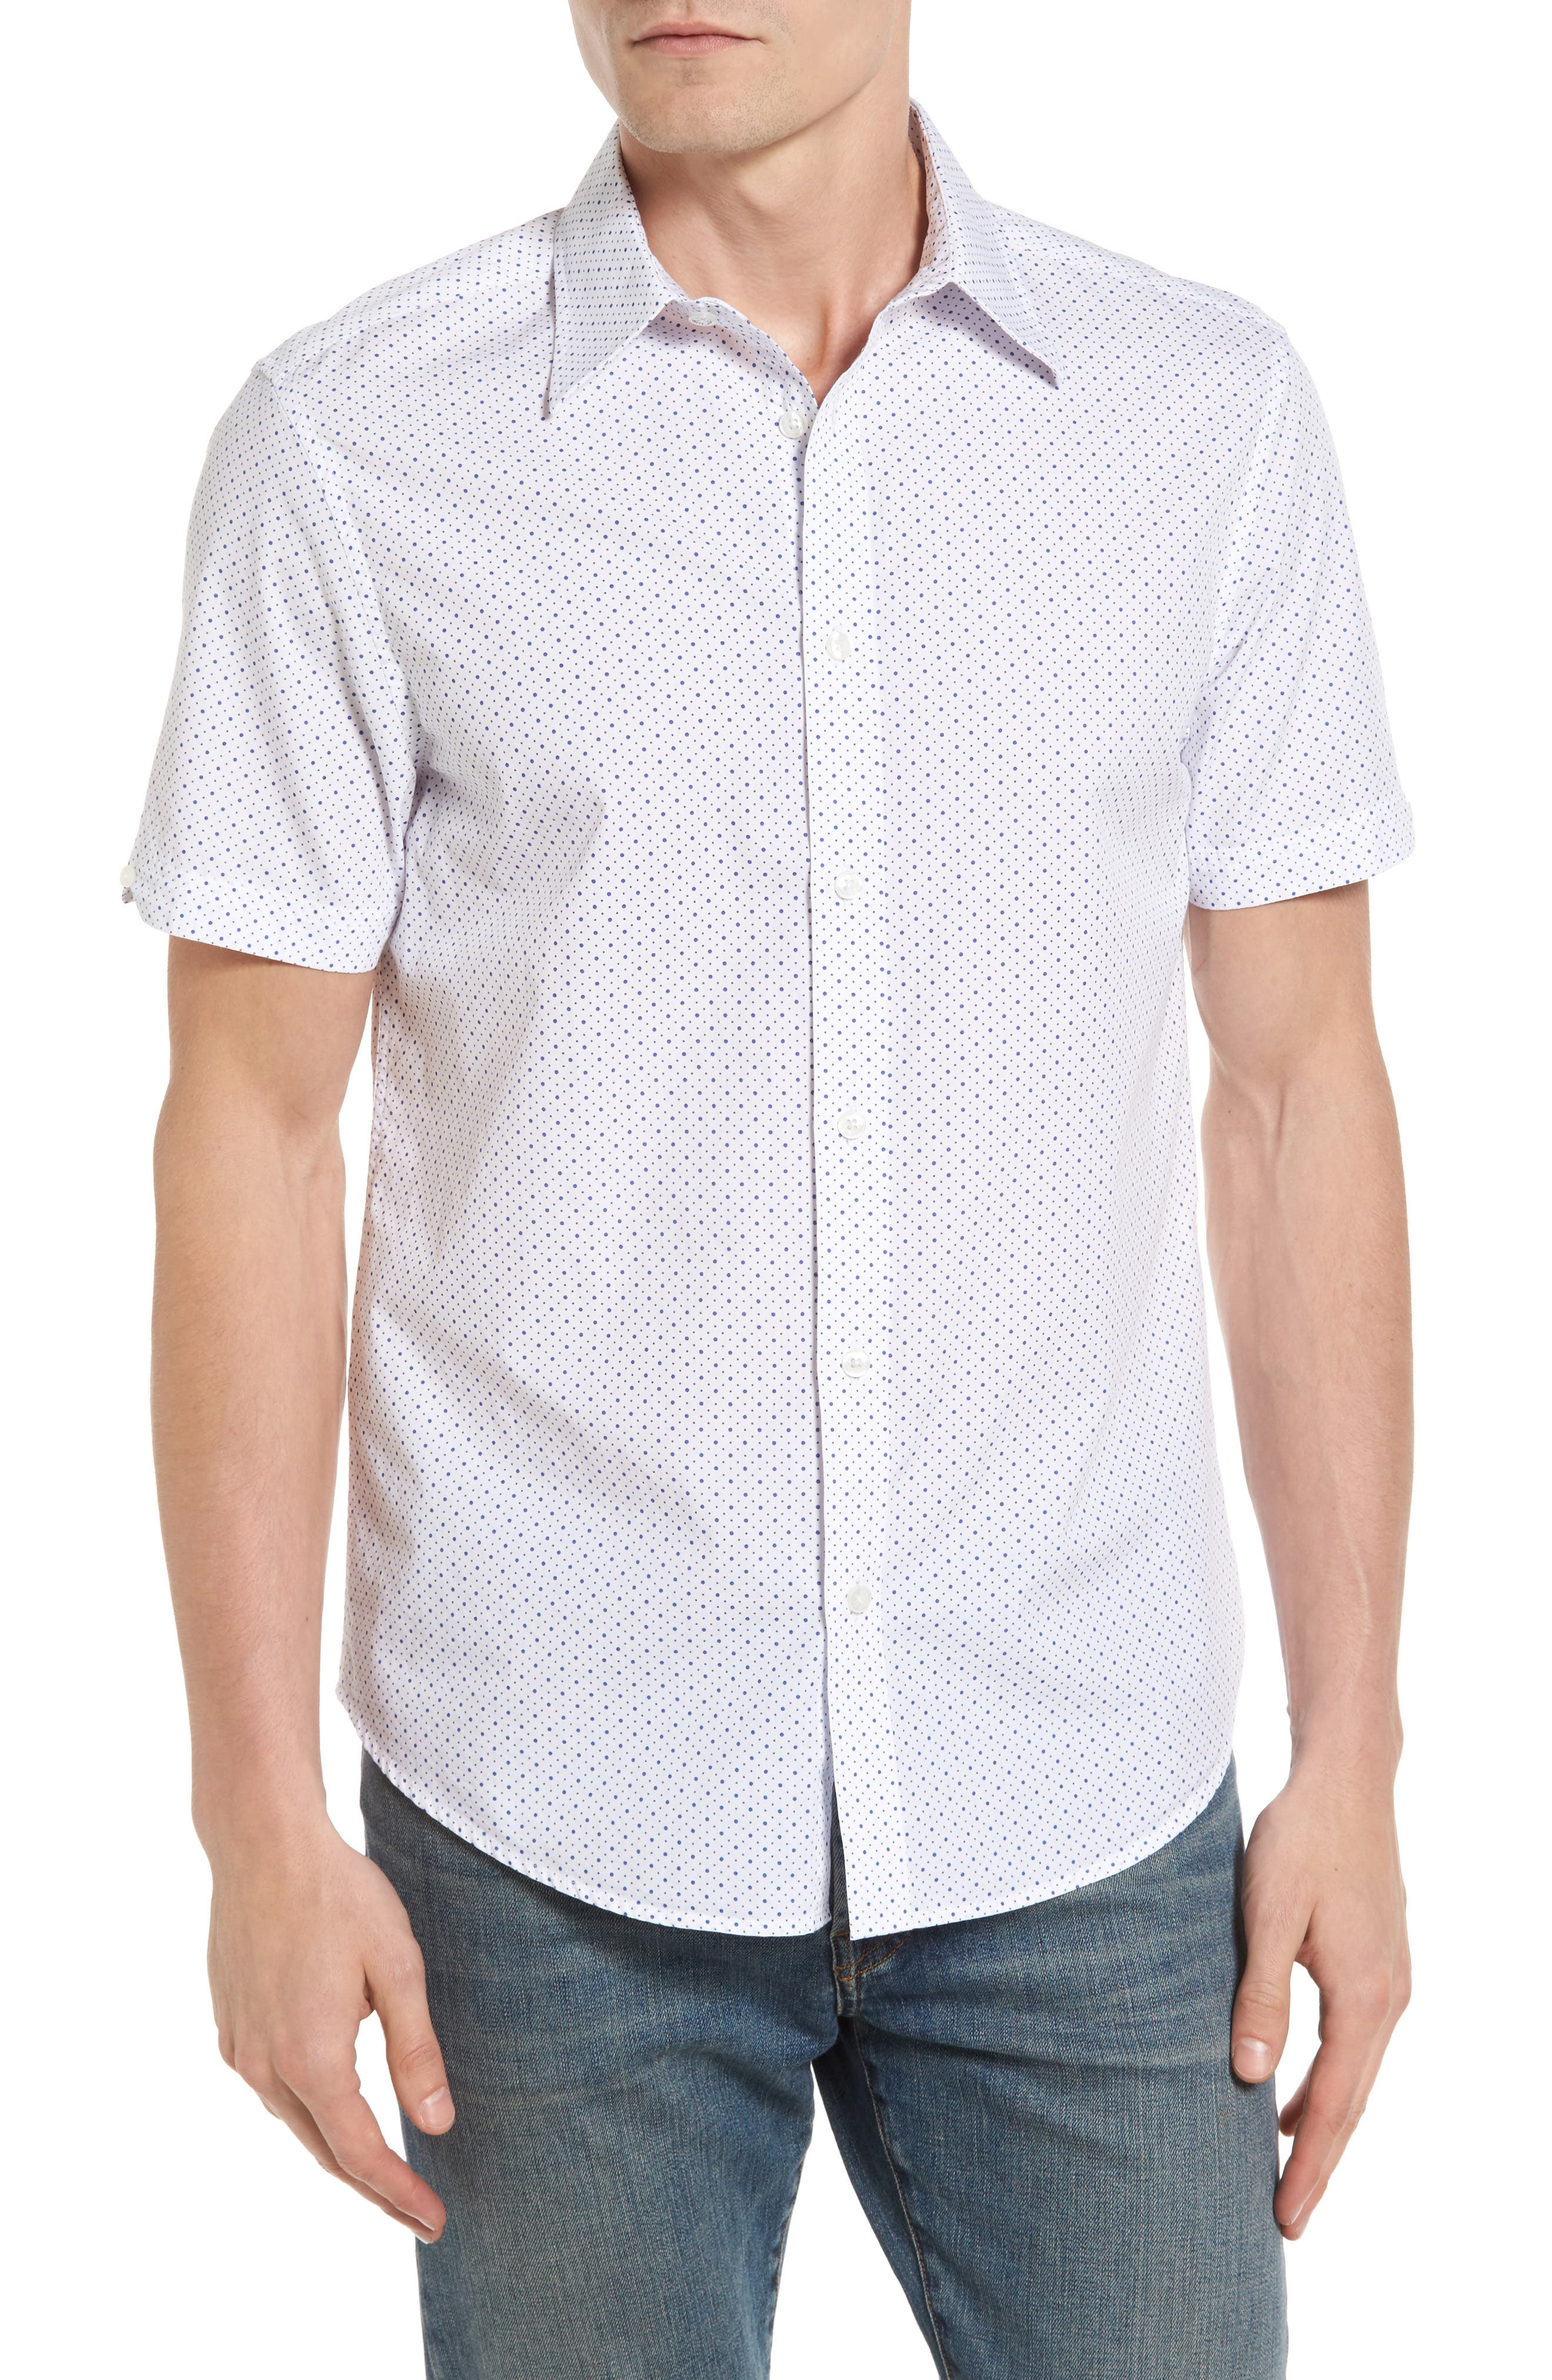 Ben Sherman Polka Dot Modern Fit Short Sleeve Shirt